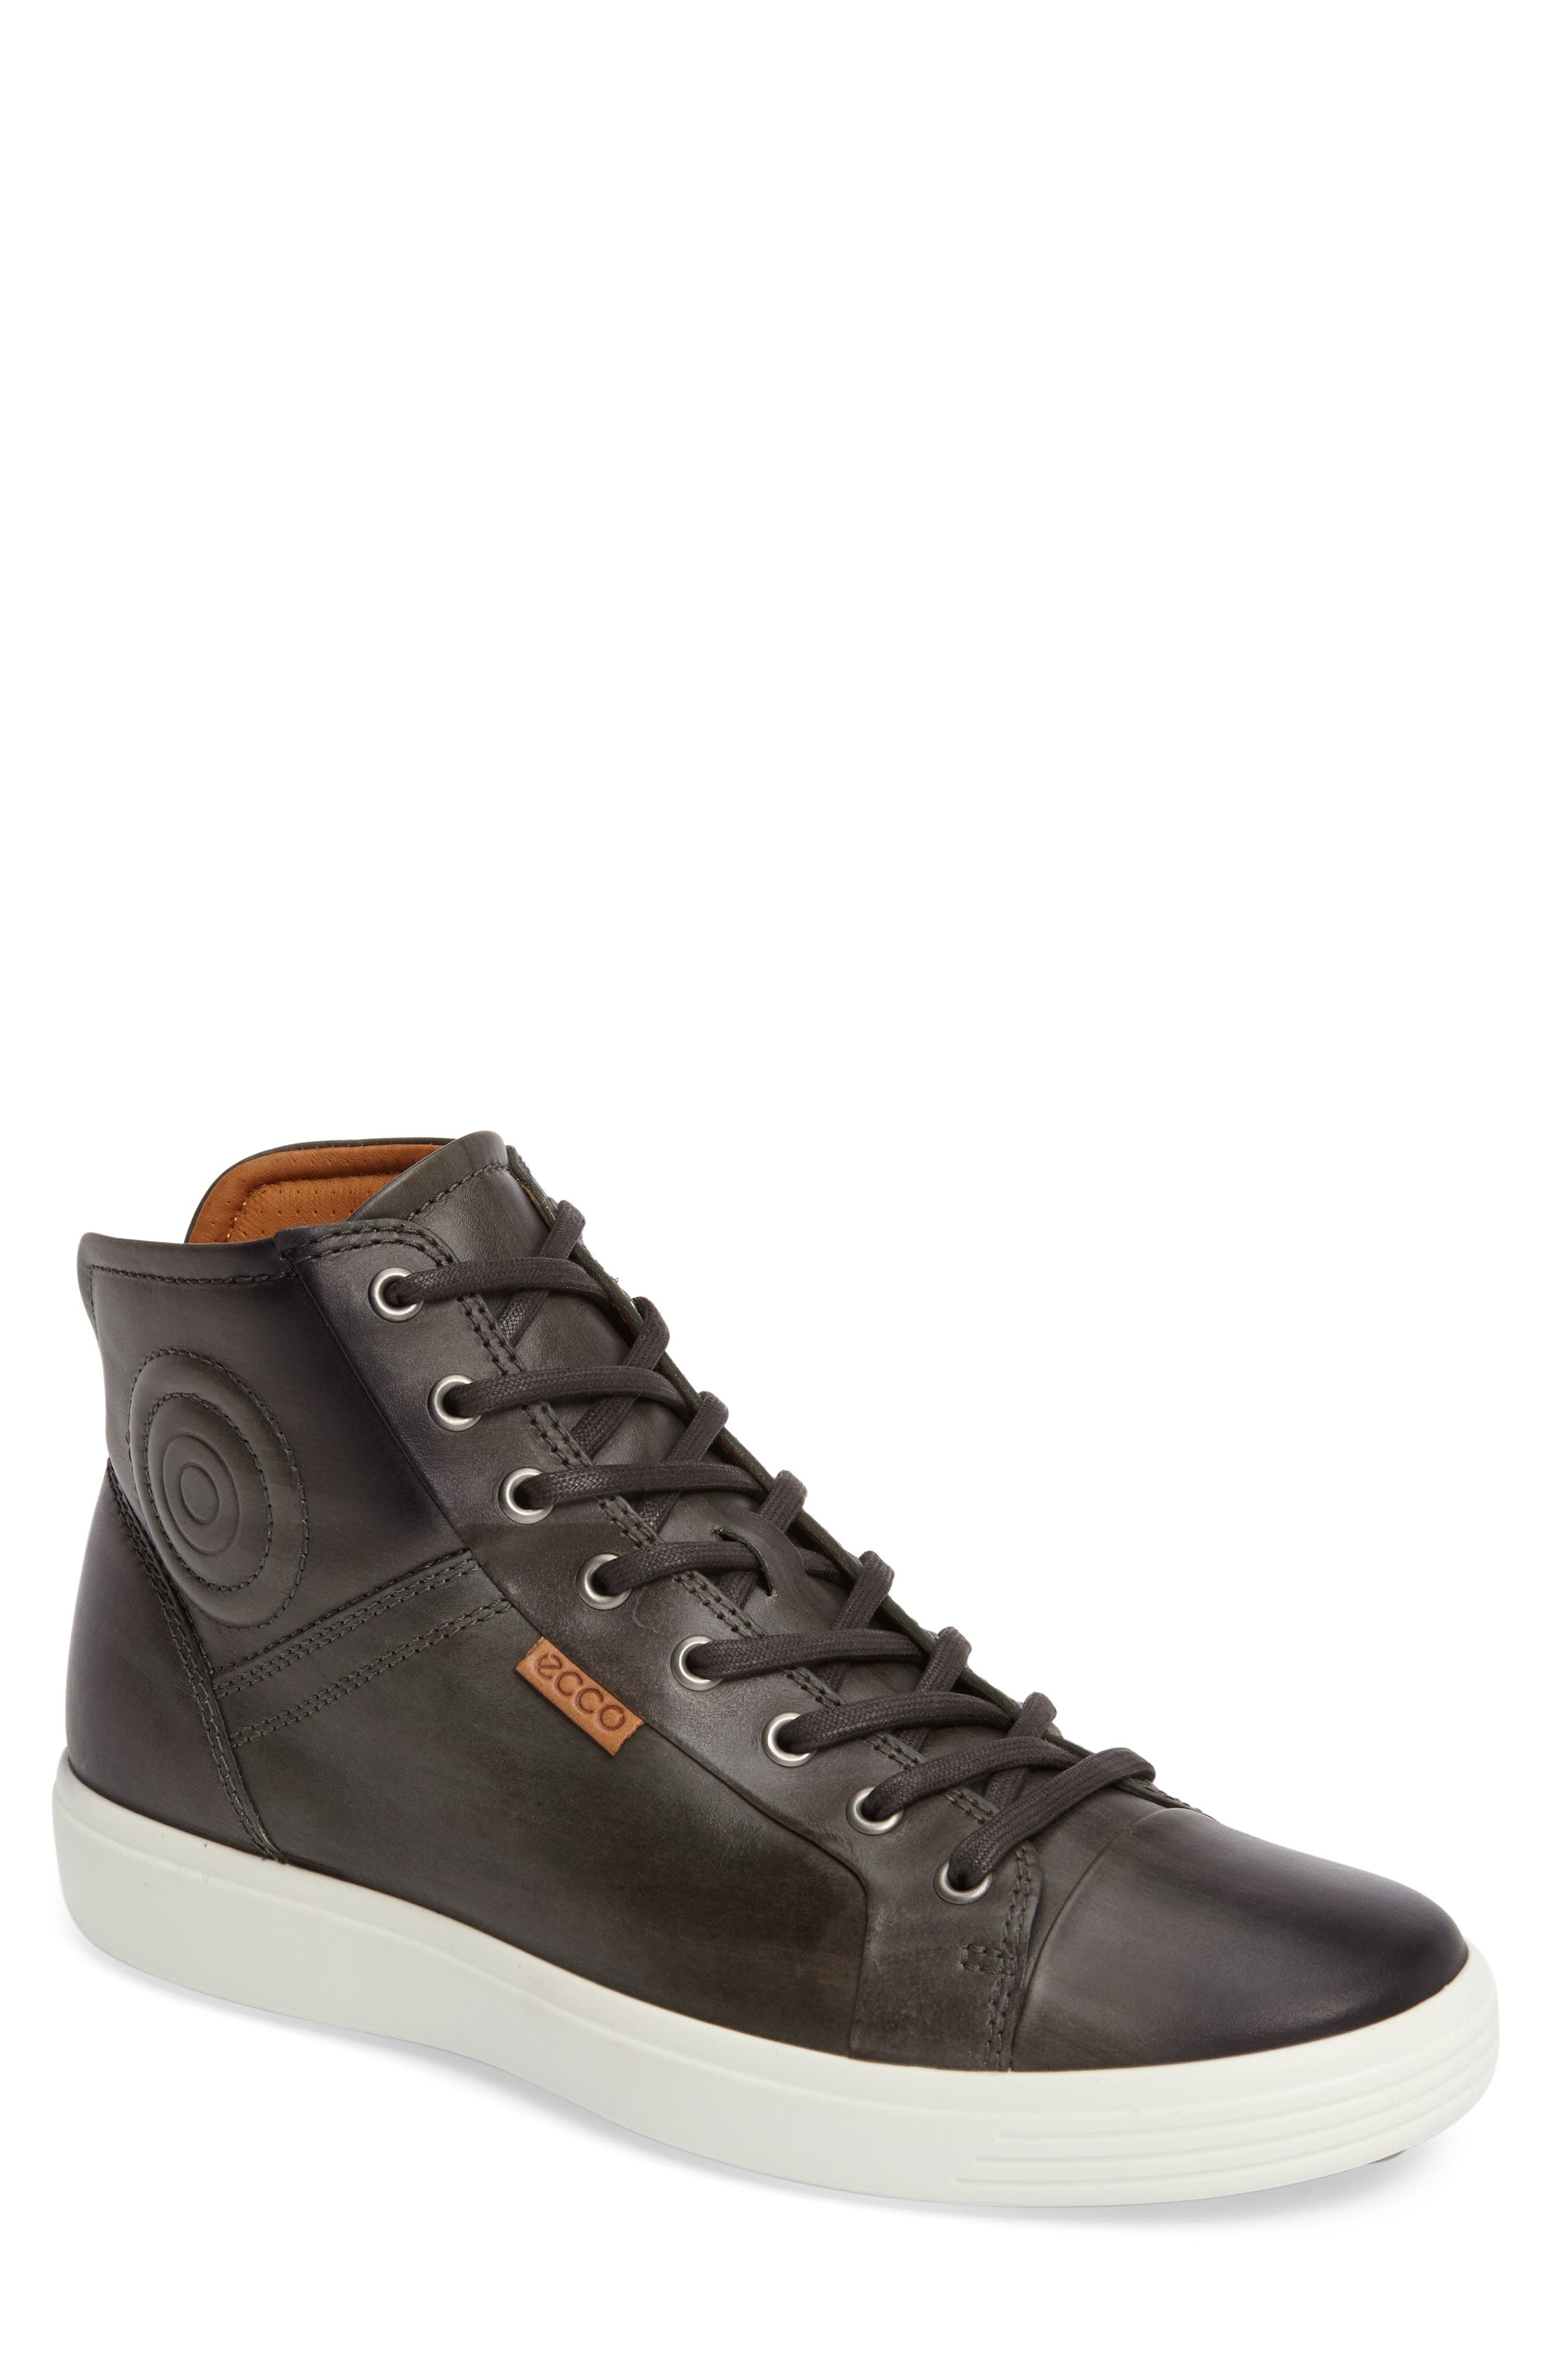 Soft 7 High Top Sneaker,                             Main thumbnail 1, color,                             Forrest